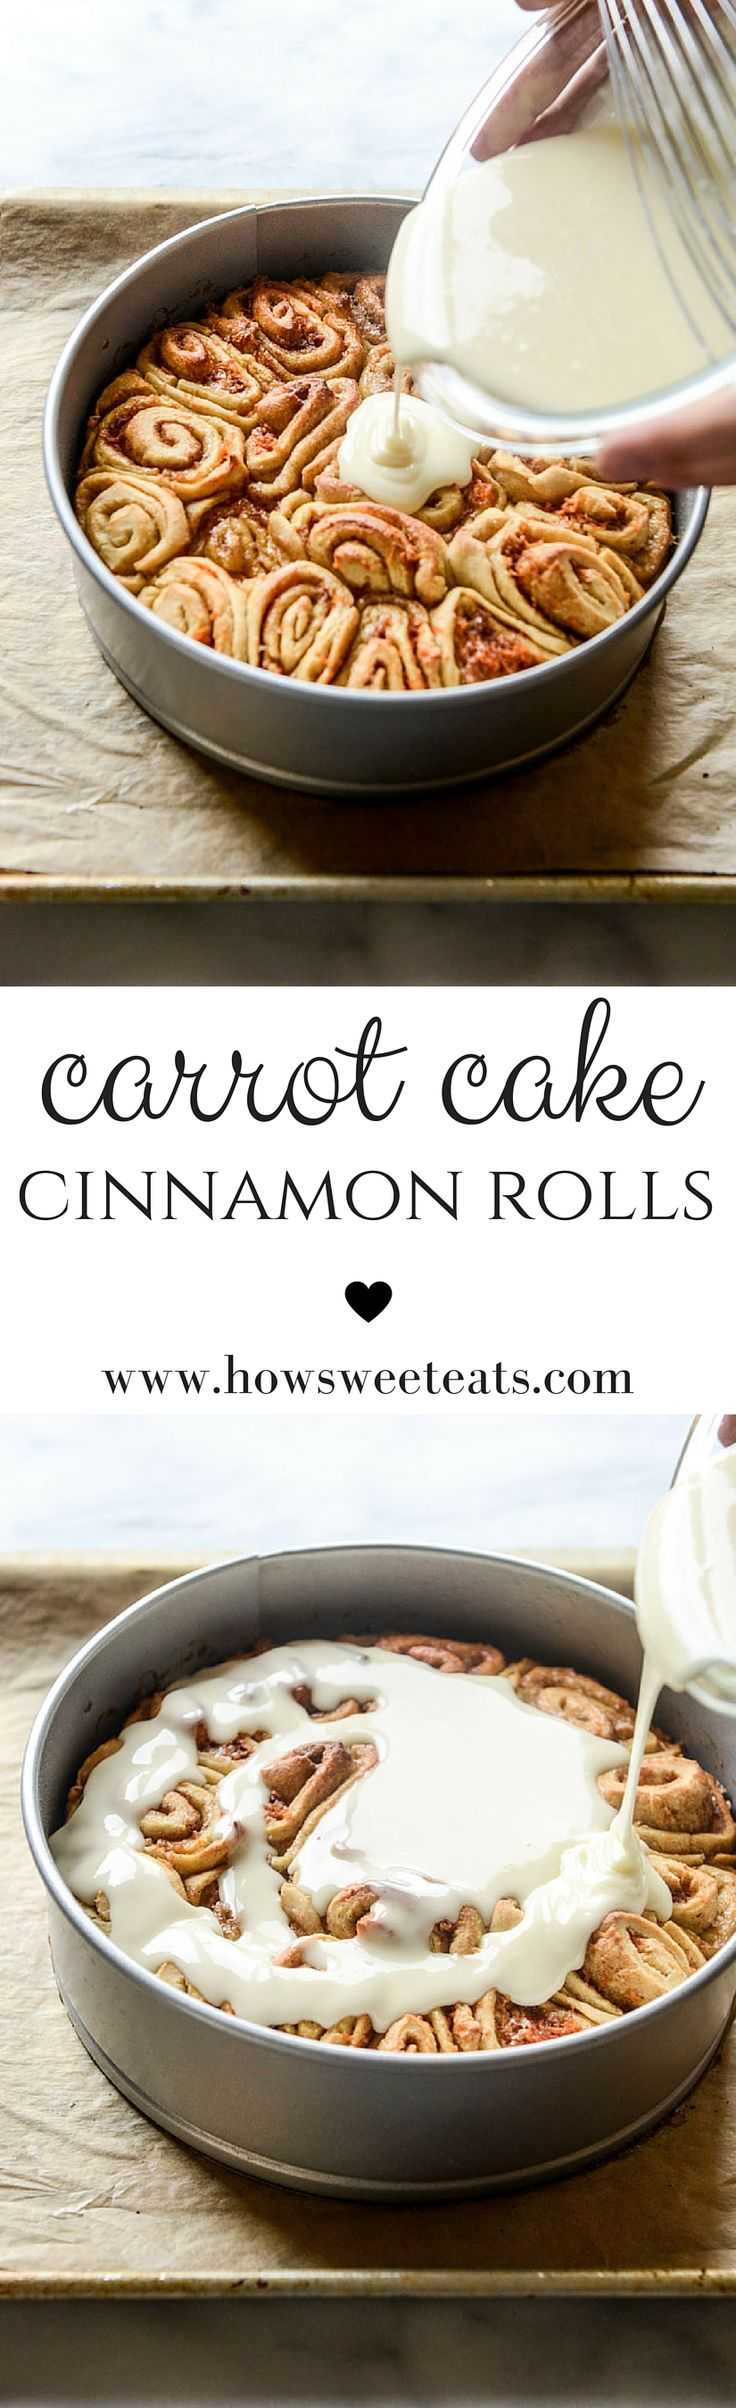 Carrot Cake Cinnamon Rolls with Mascarpone Icing by @howsweeteats I…